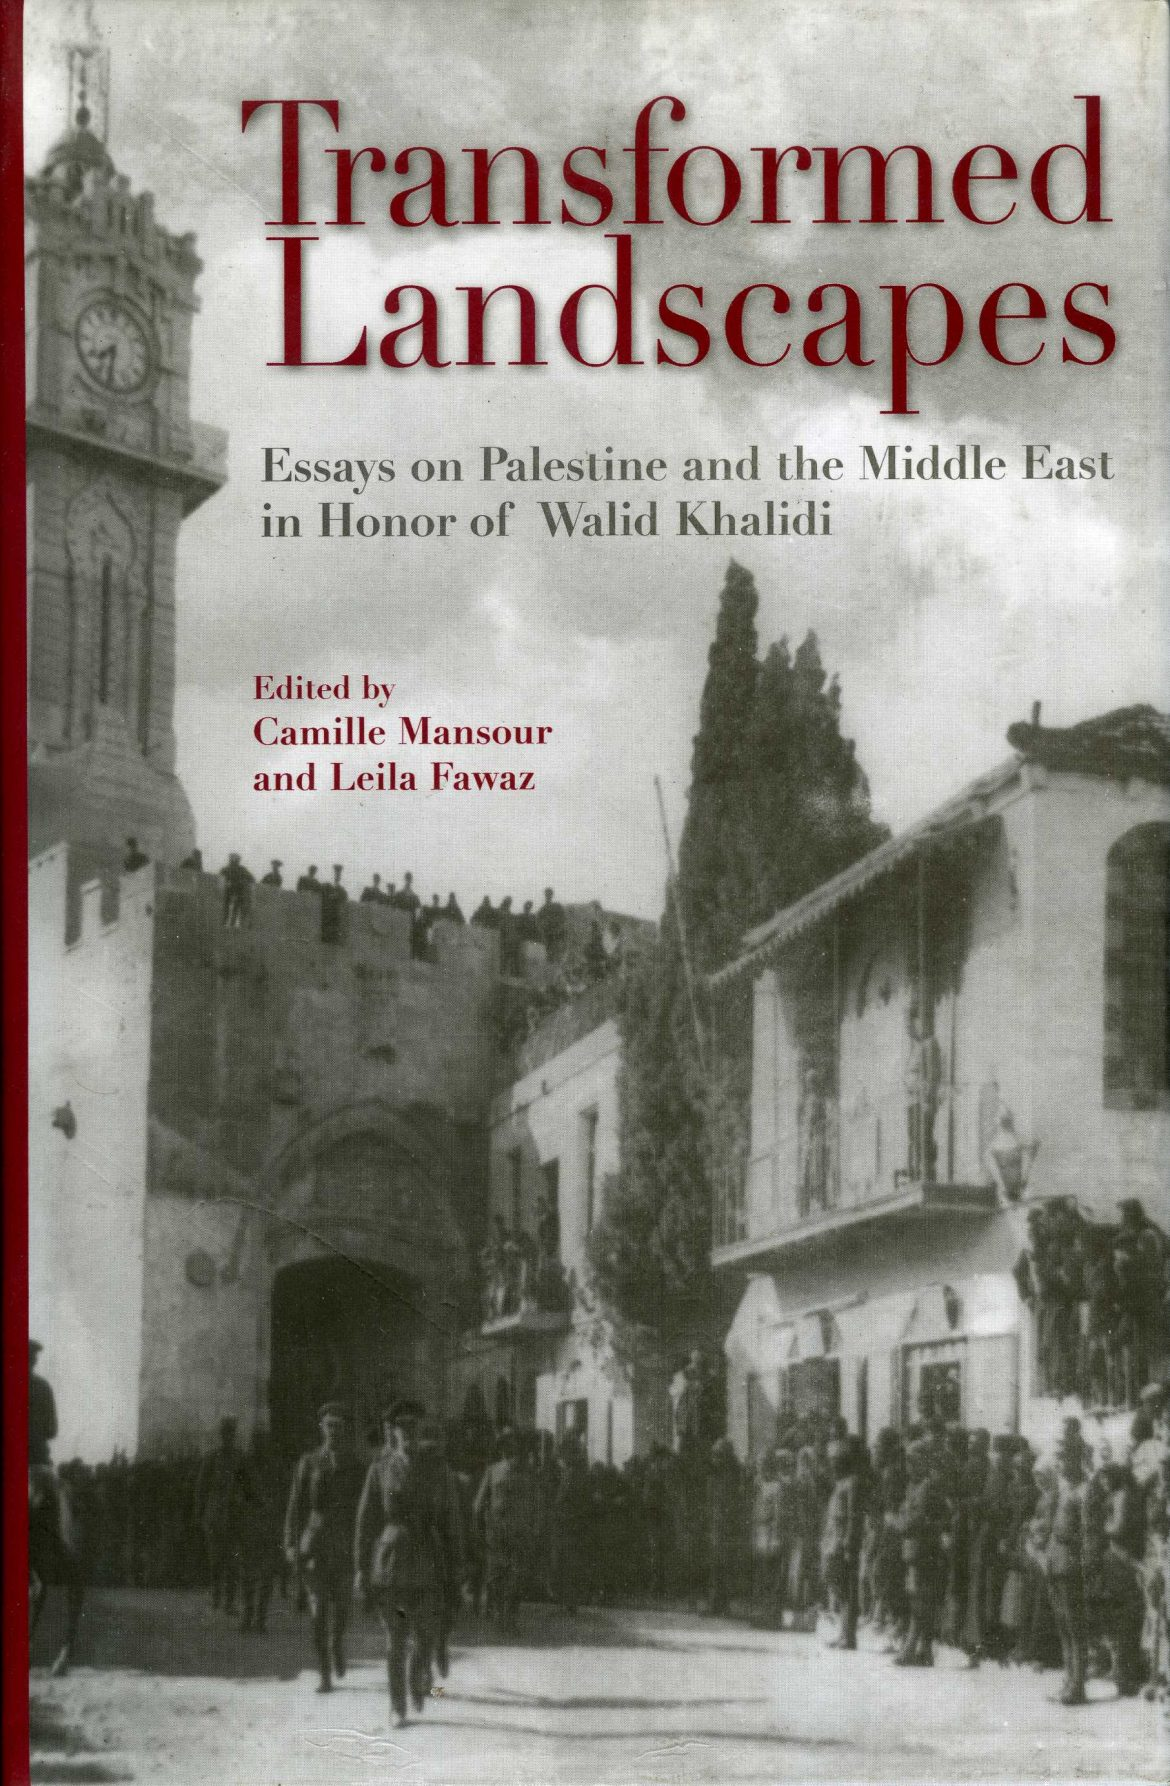 Transformed landscapes : essays on Palestine and the Middle East in honor of Walid Khalidi